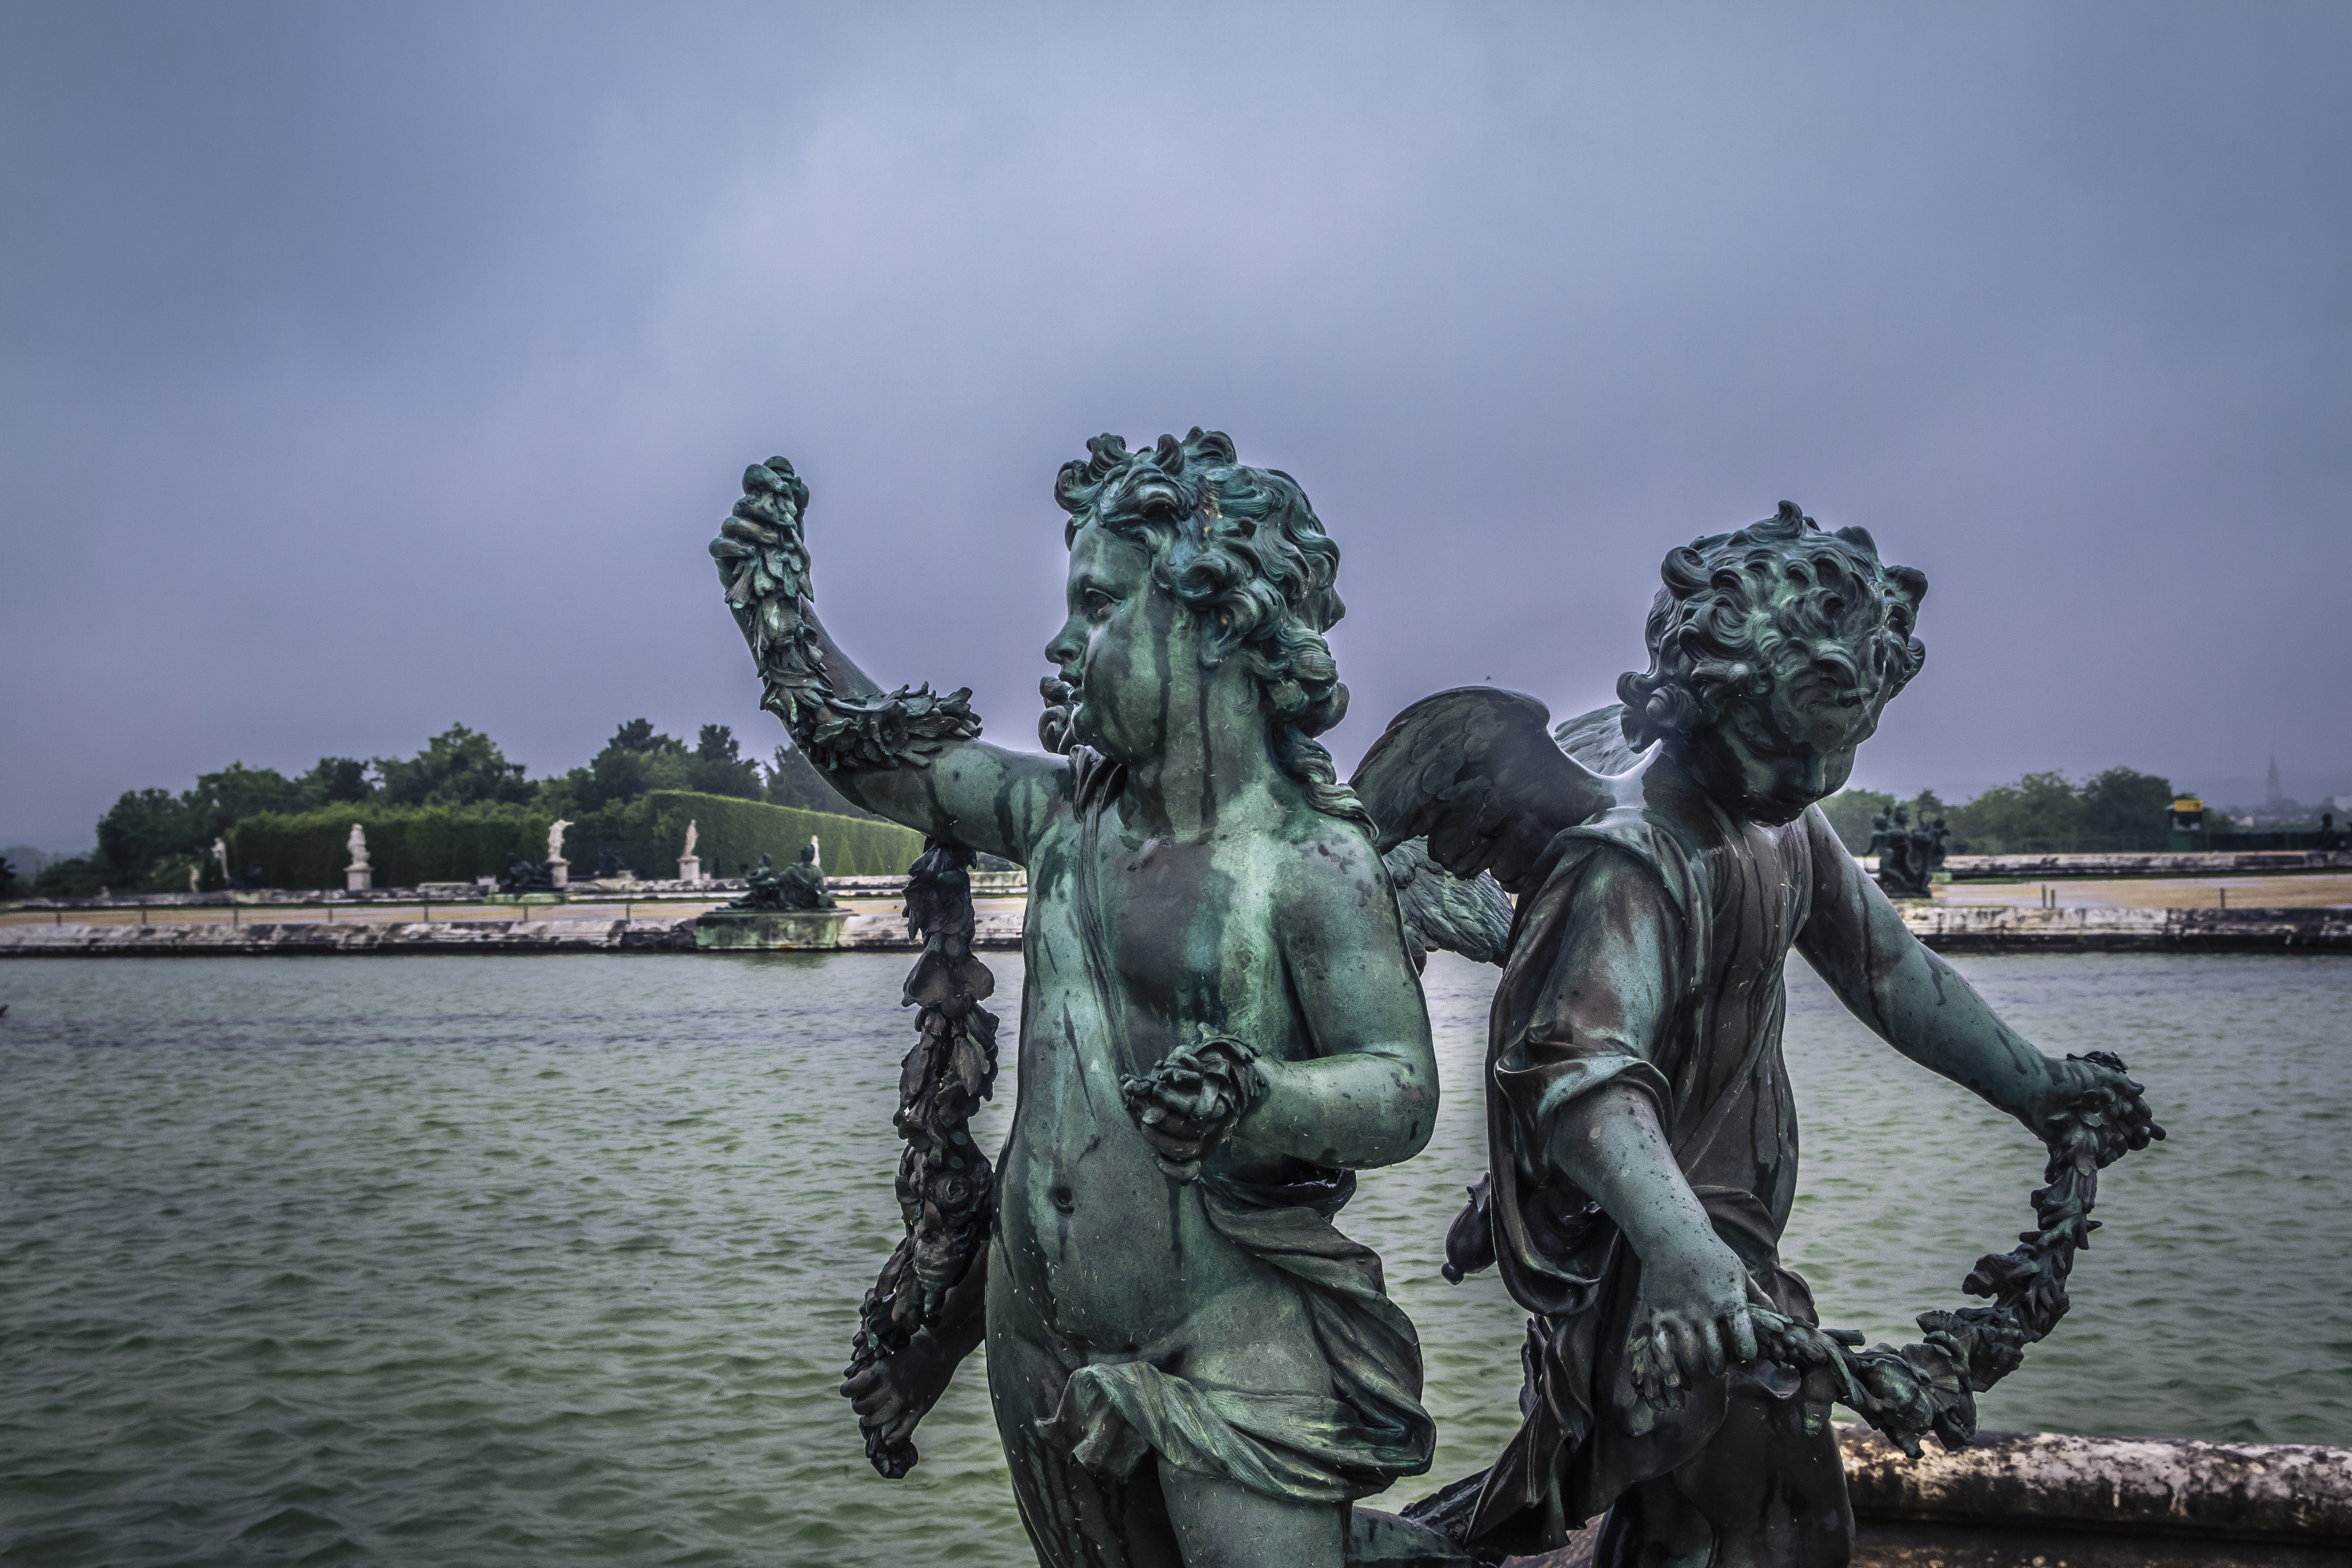 Statues in the Versailles palace gardens